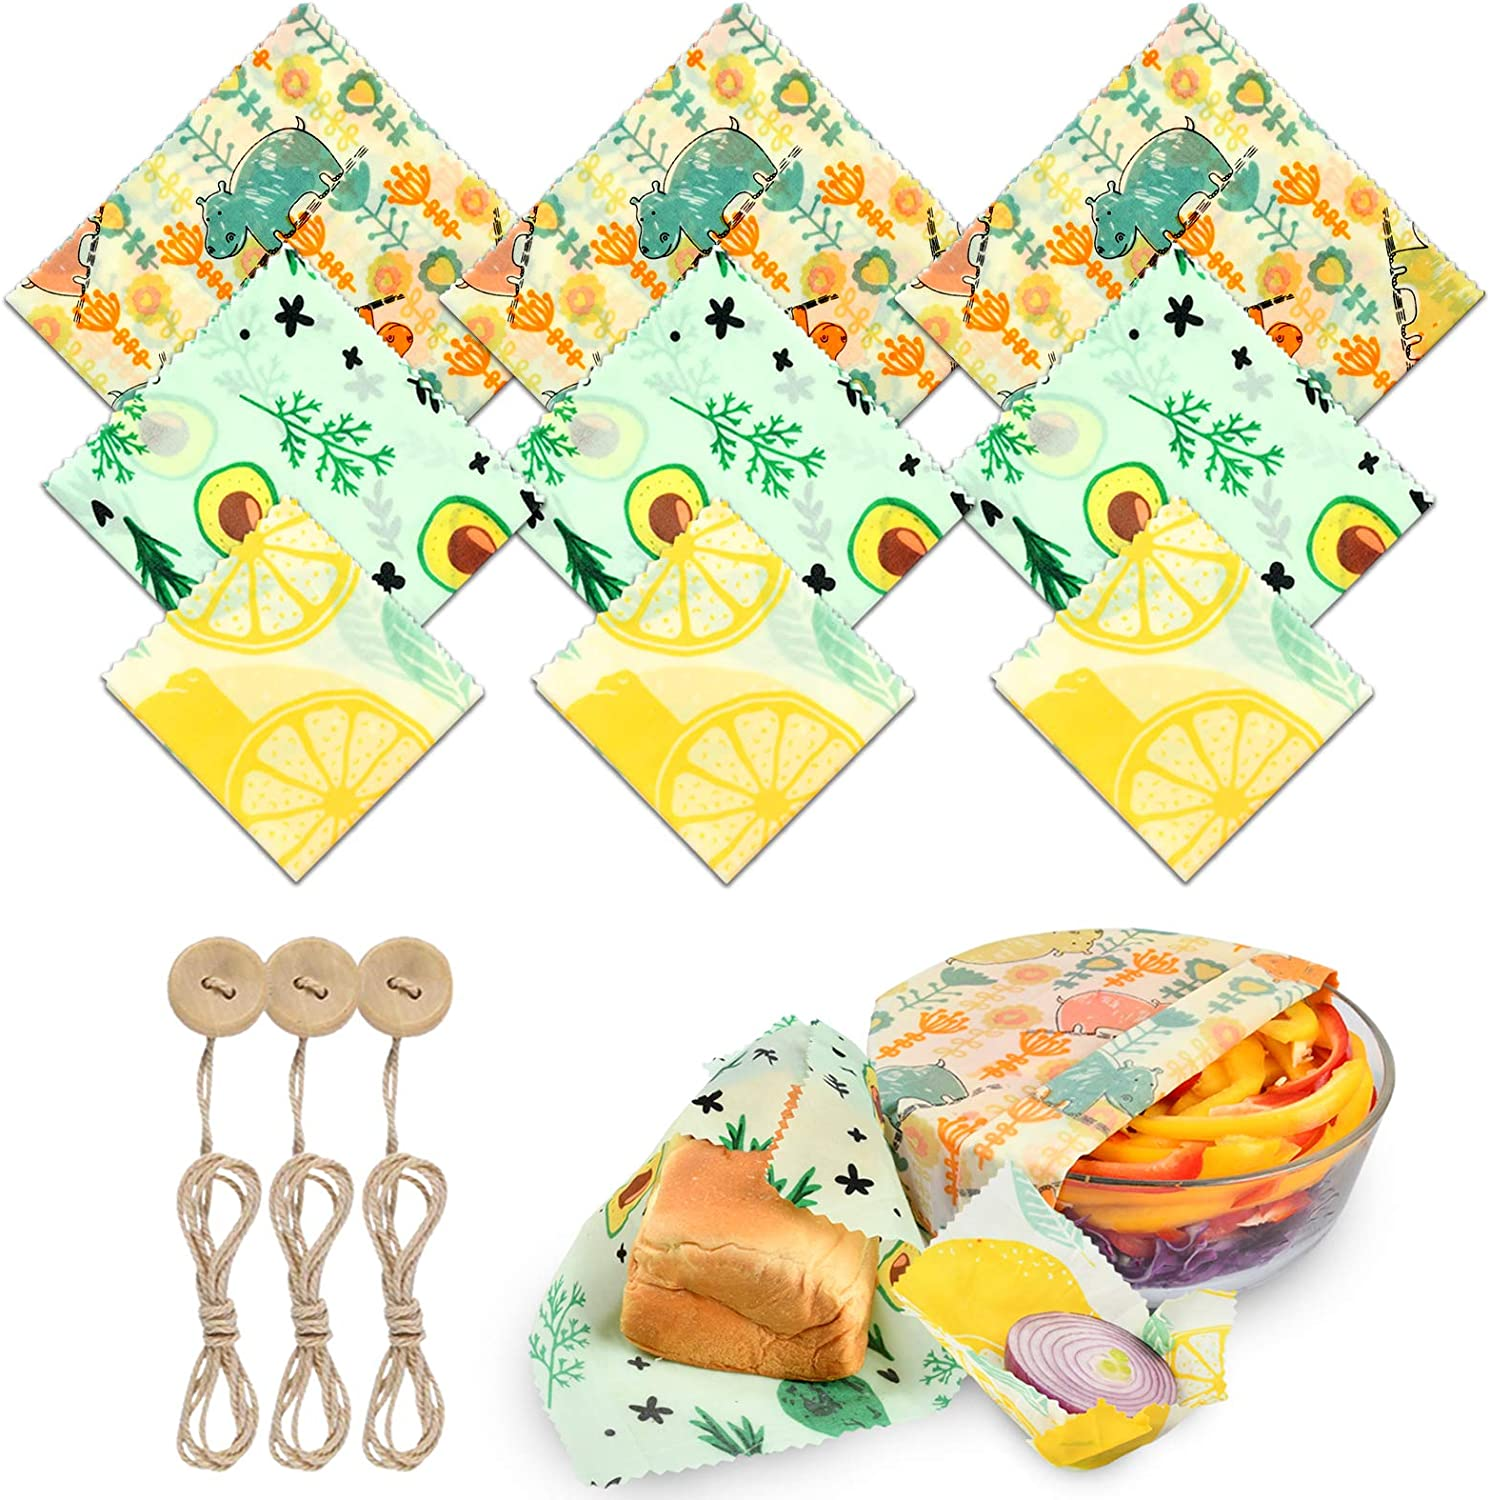 Knendet Reusable Beeswax Wrap, 9 Packs Eco-friendly Organic Beeswax Food Wrap - 3 Small, 3 Medium, 3 Large, Food Wrap with Sealing Ropes, Plastic Free Alternative Food Storage Bread Sandwich Wrapping